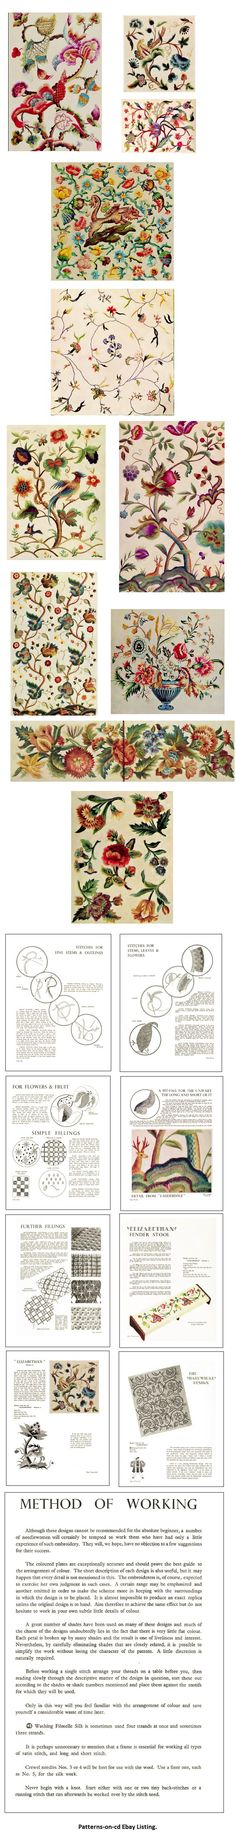 Jacobean Hand Embroidery Designs for Floss Thread Embroidery How to Manual on CD   eBay